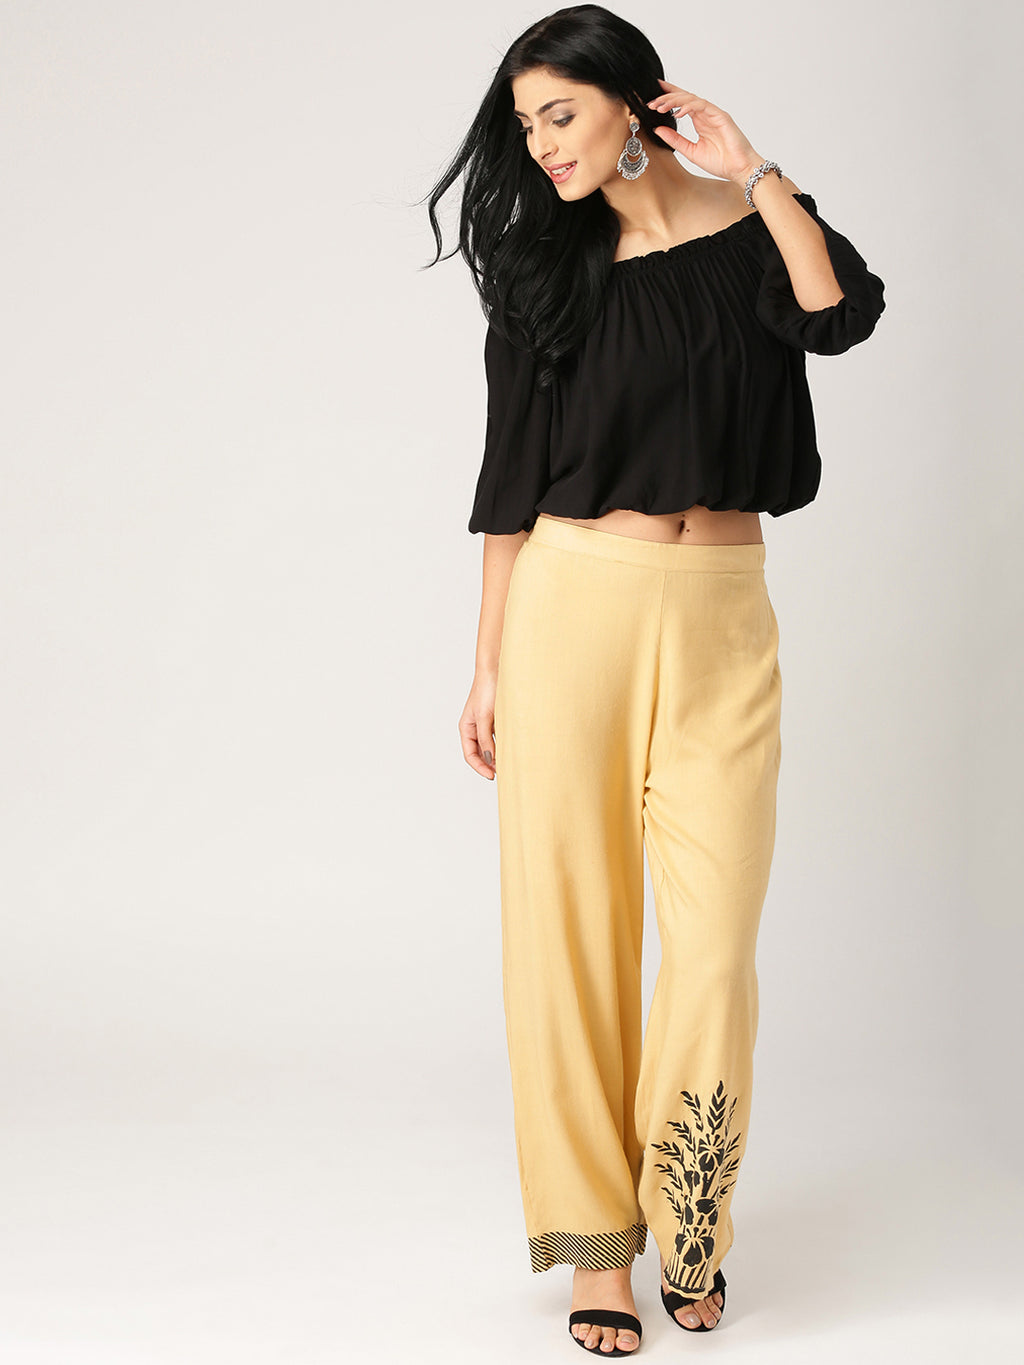 Beige & Black Printed Wide Leg Palazzos | Znx4ever.com